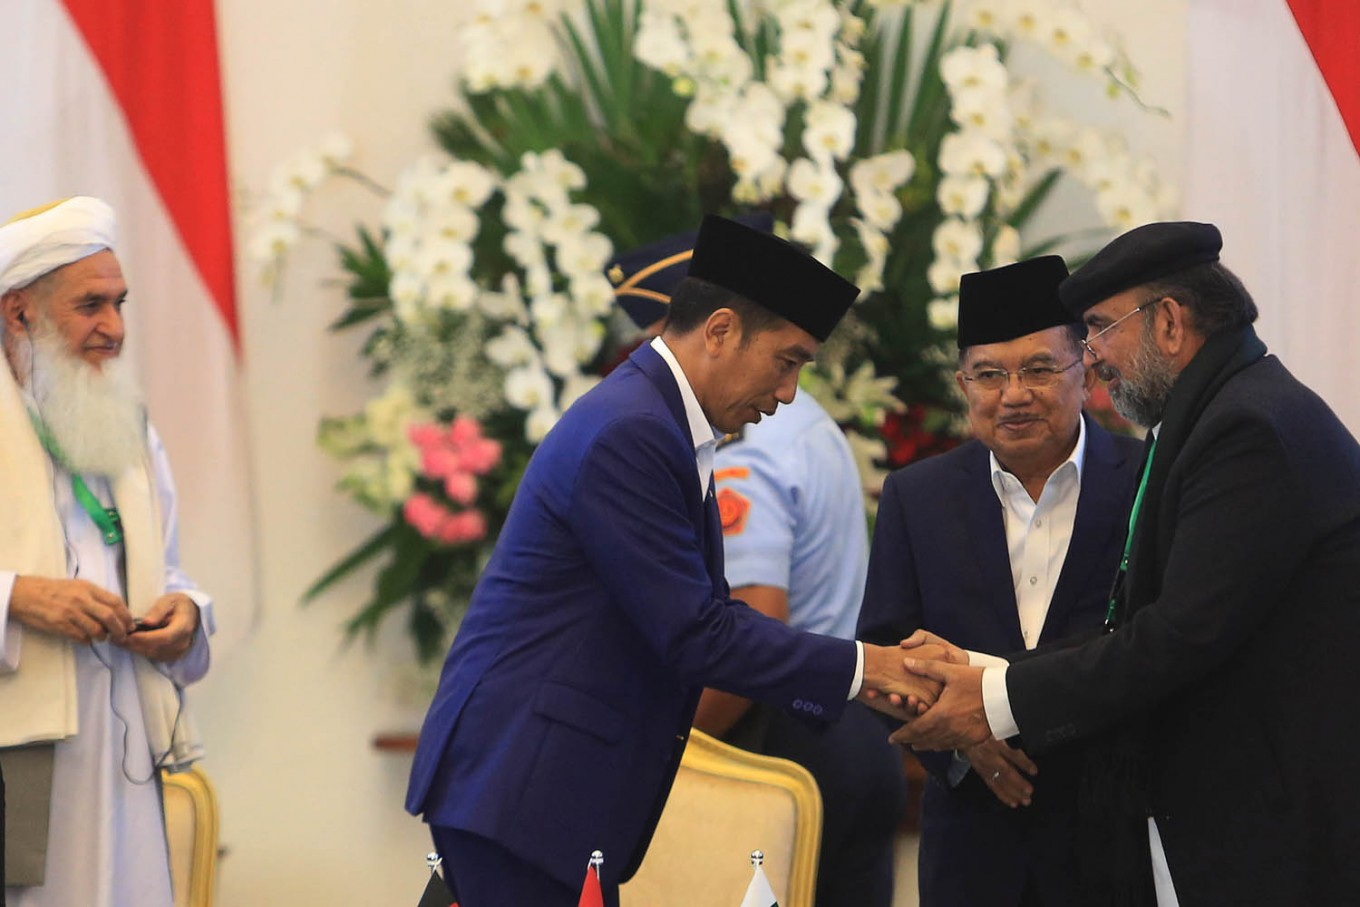 President Jokowi opens trilateral ulema meeting at BogorPalace